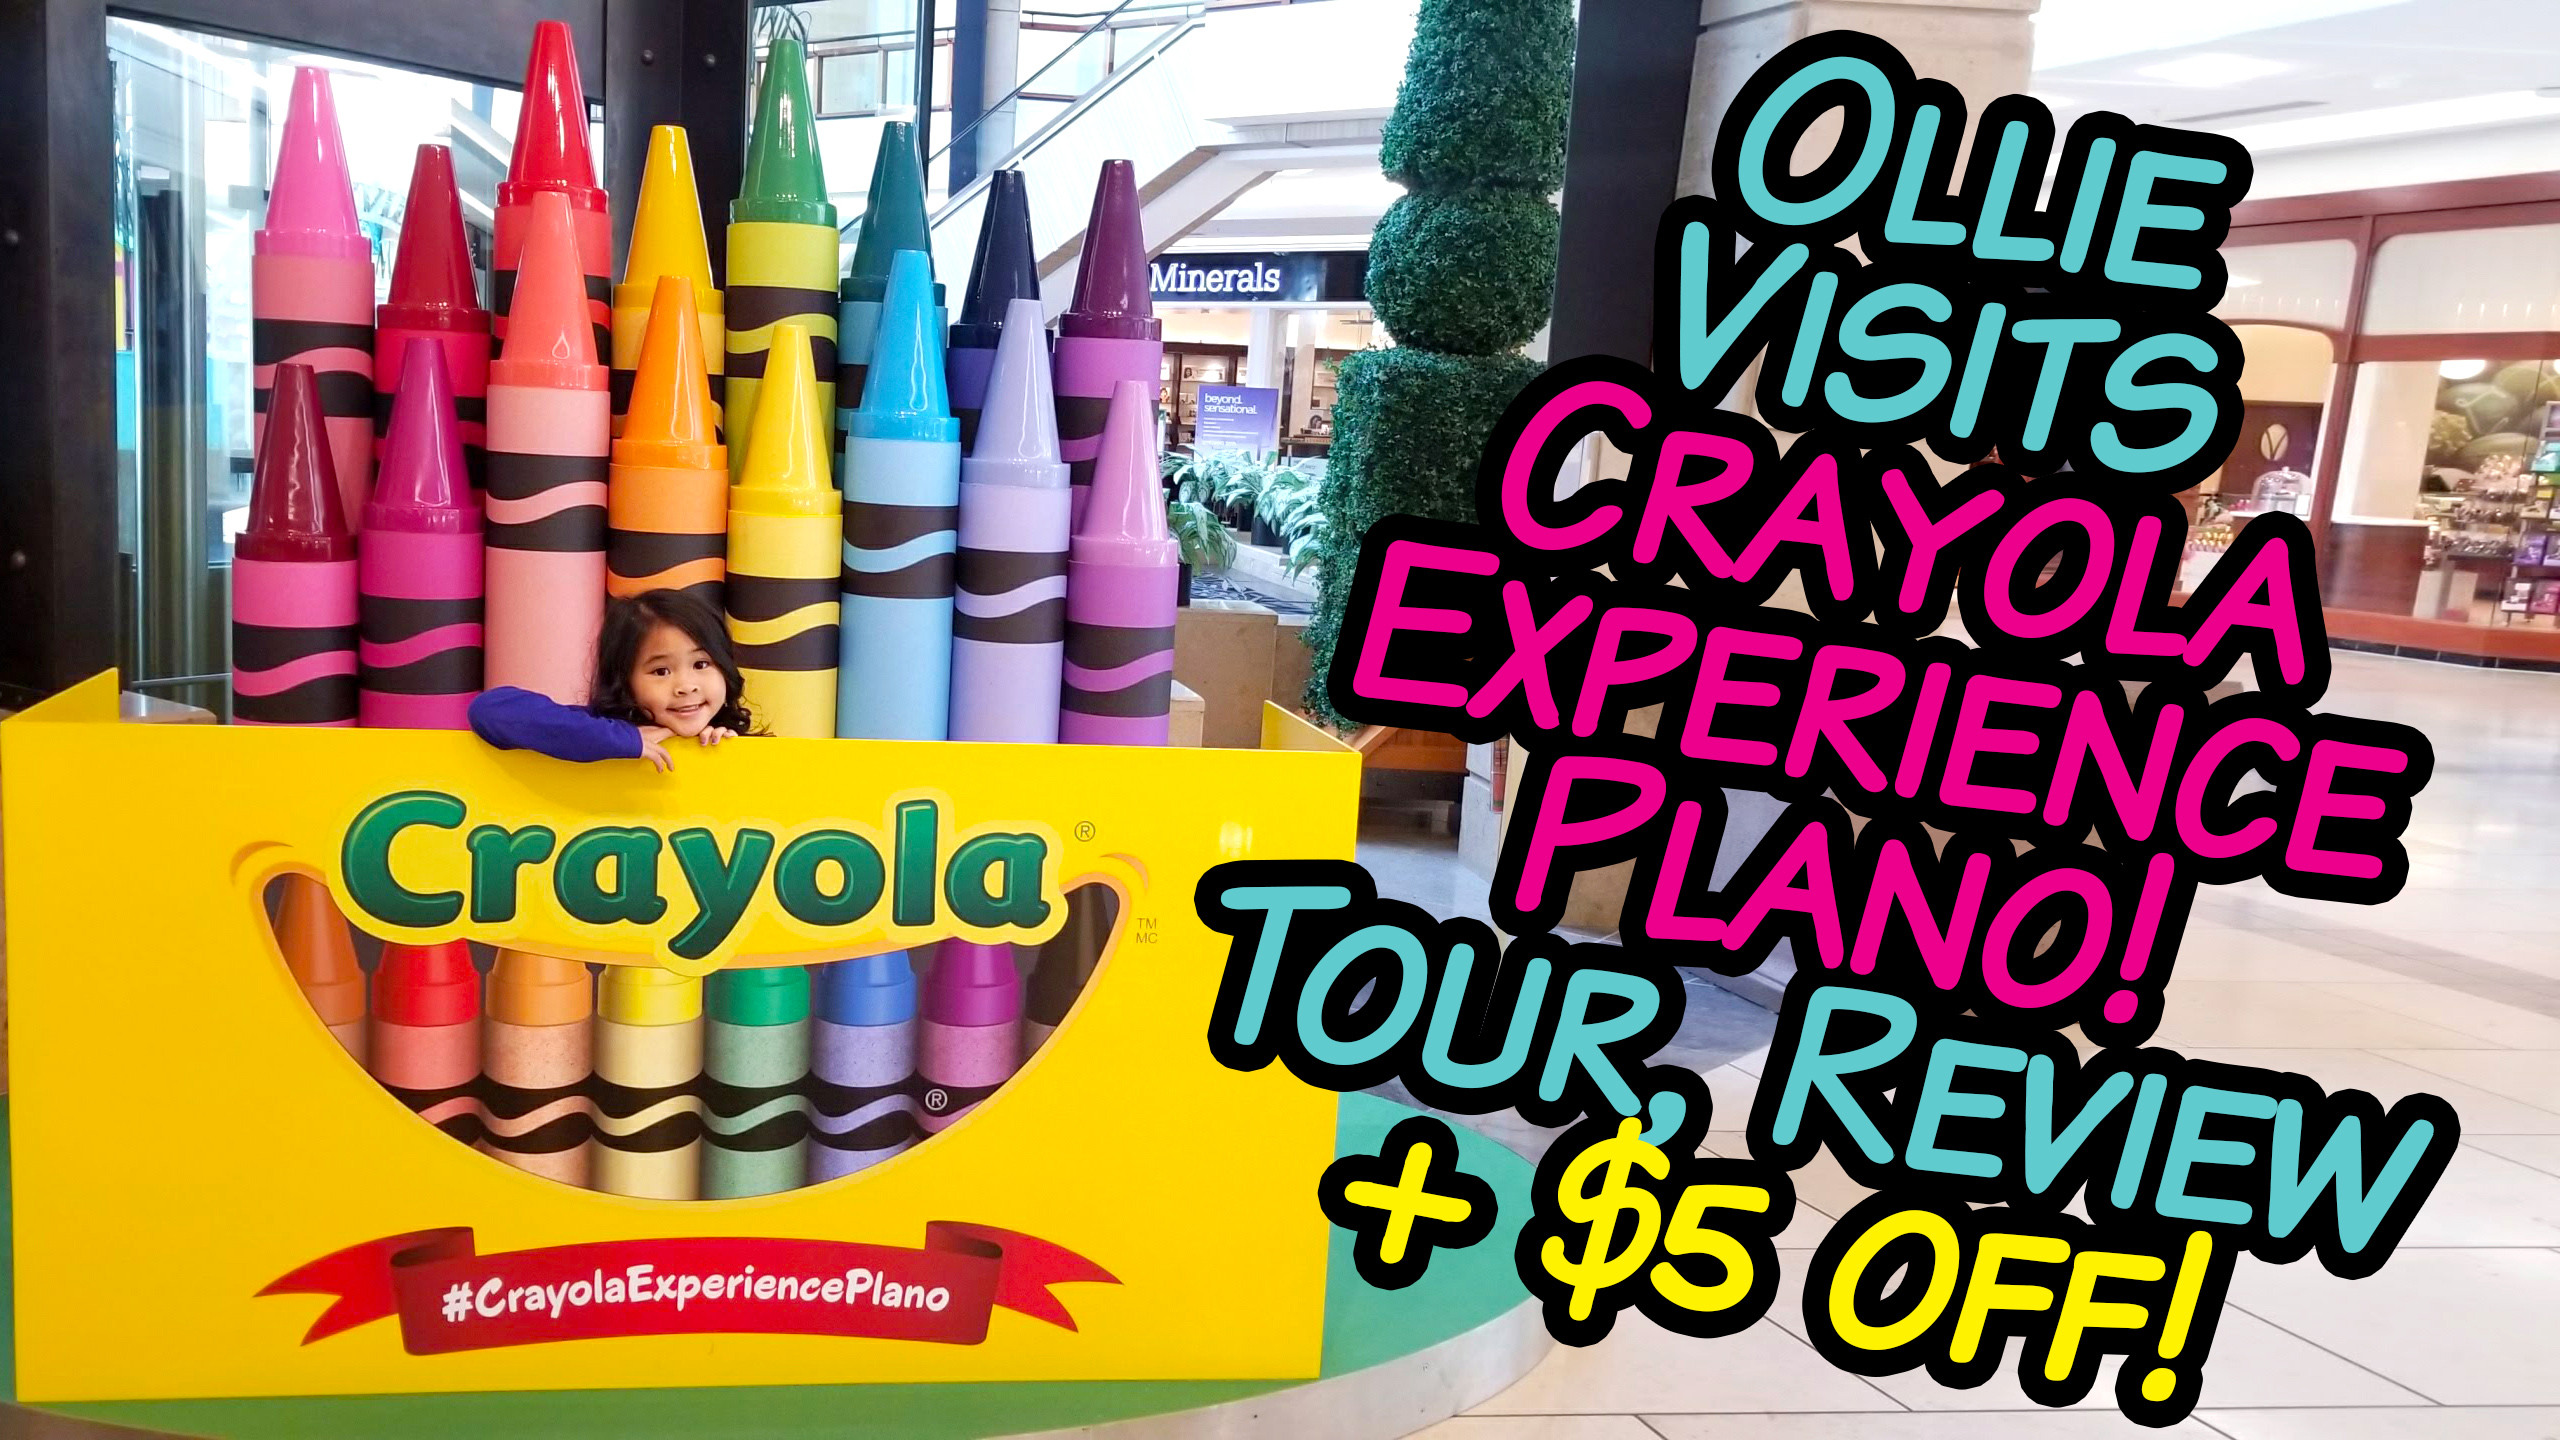 image regarding Crayola Coupons Printable identified as $7 Crayola Knowledge Coupon Code (all destinations), Overview